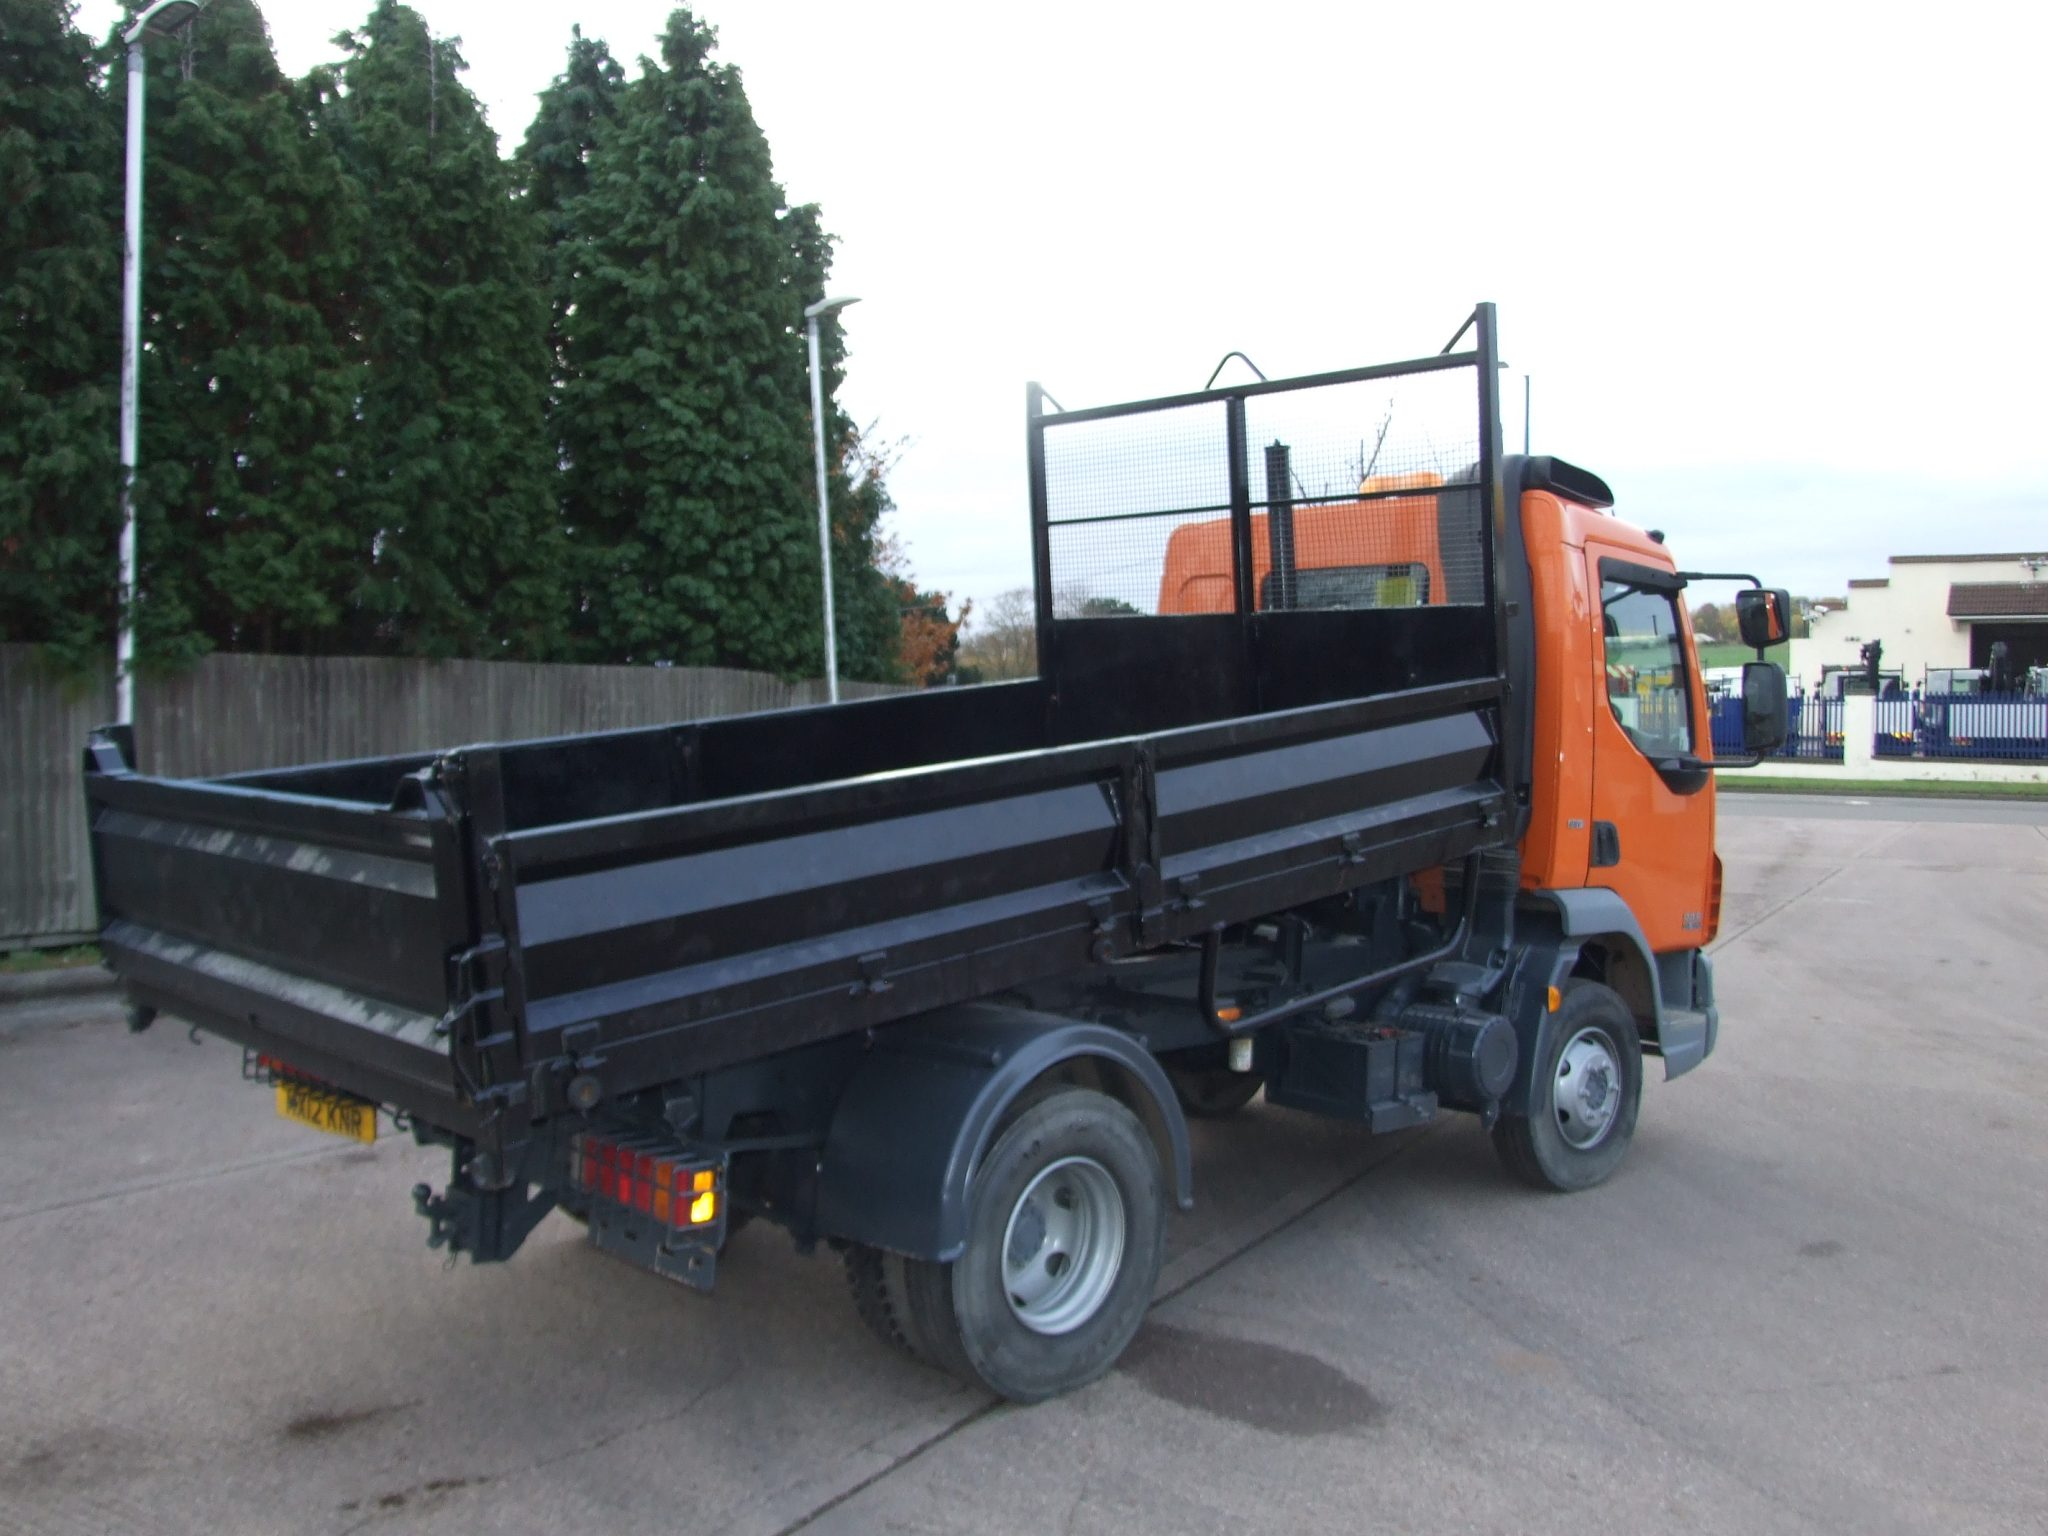 Mercedes Benz Of West Chester >> EX COUNCIL DAF TIPPER 2012 79,528 KMS ONLY - Cromwell Trucks